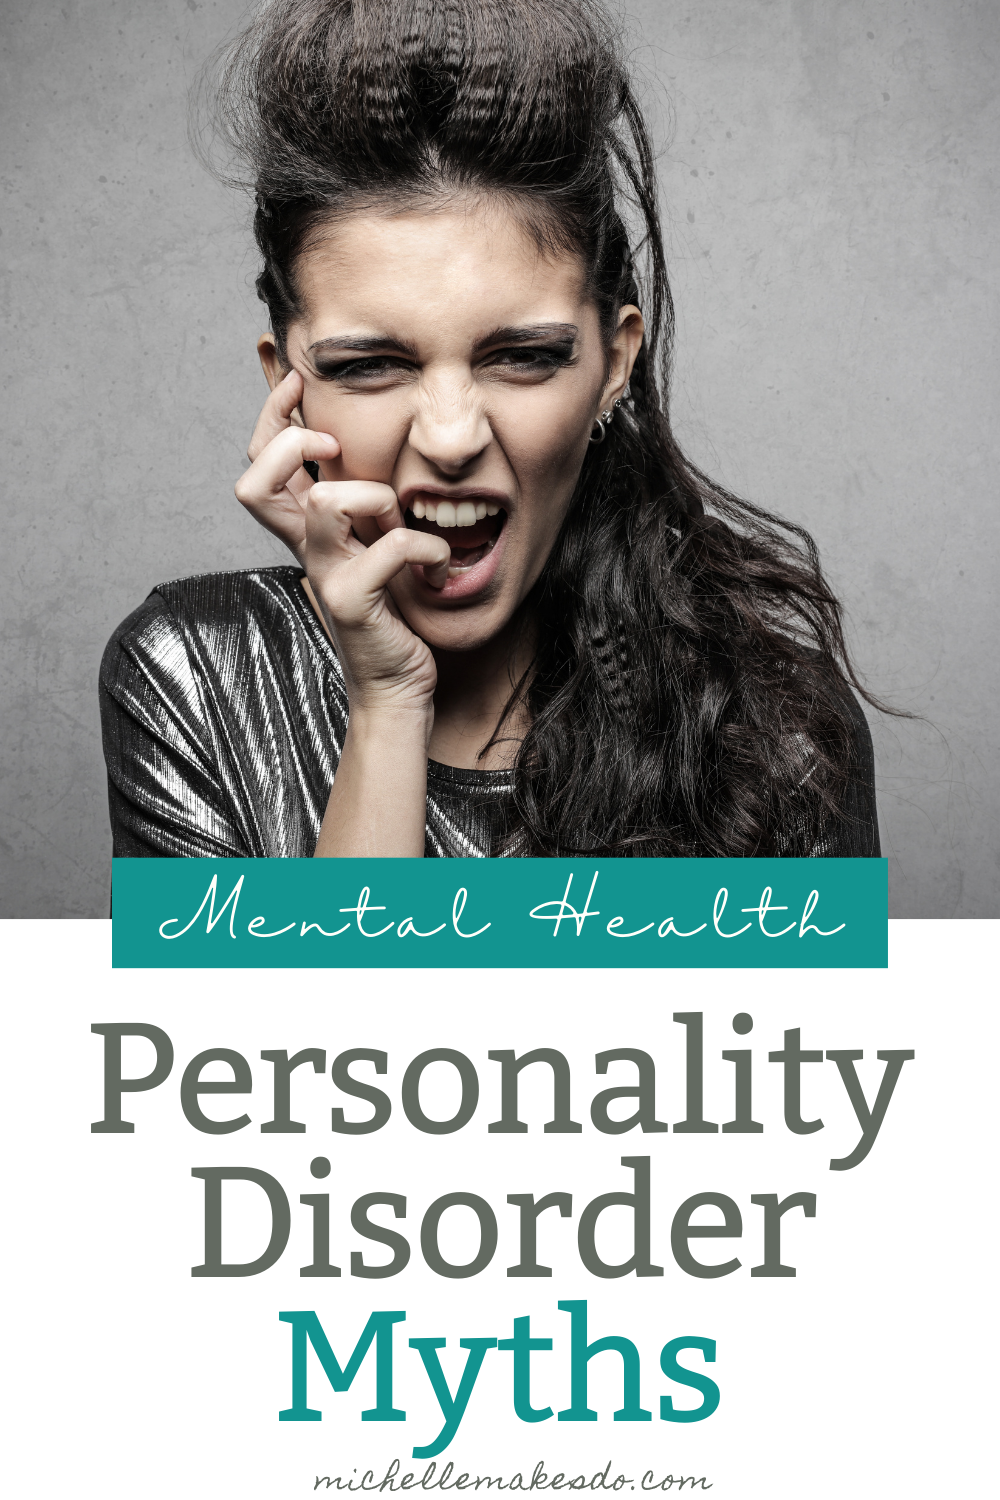 Personality Disorder Myths